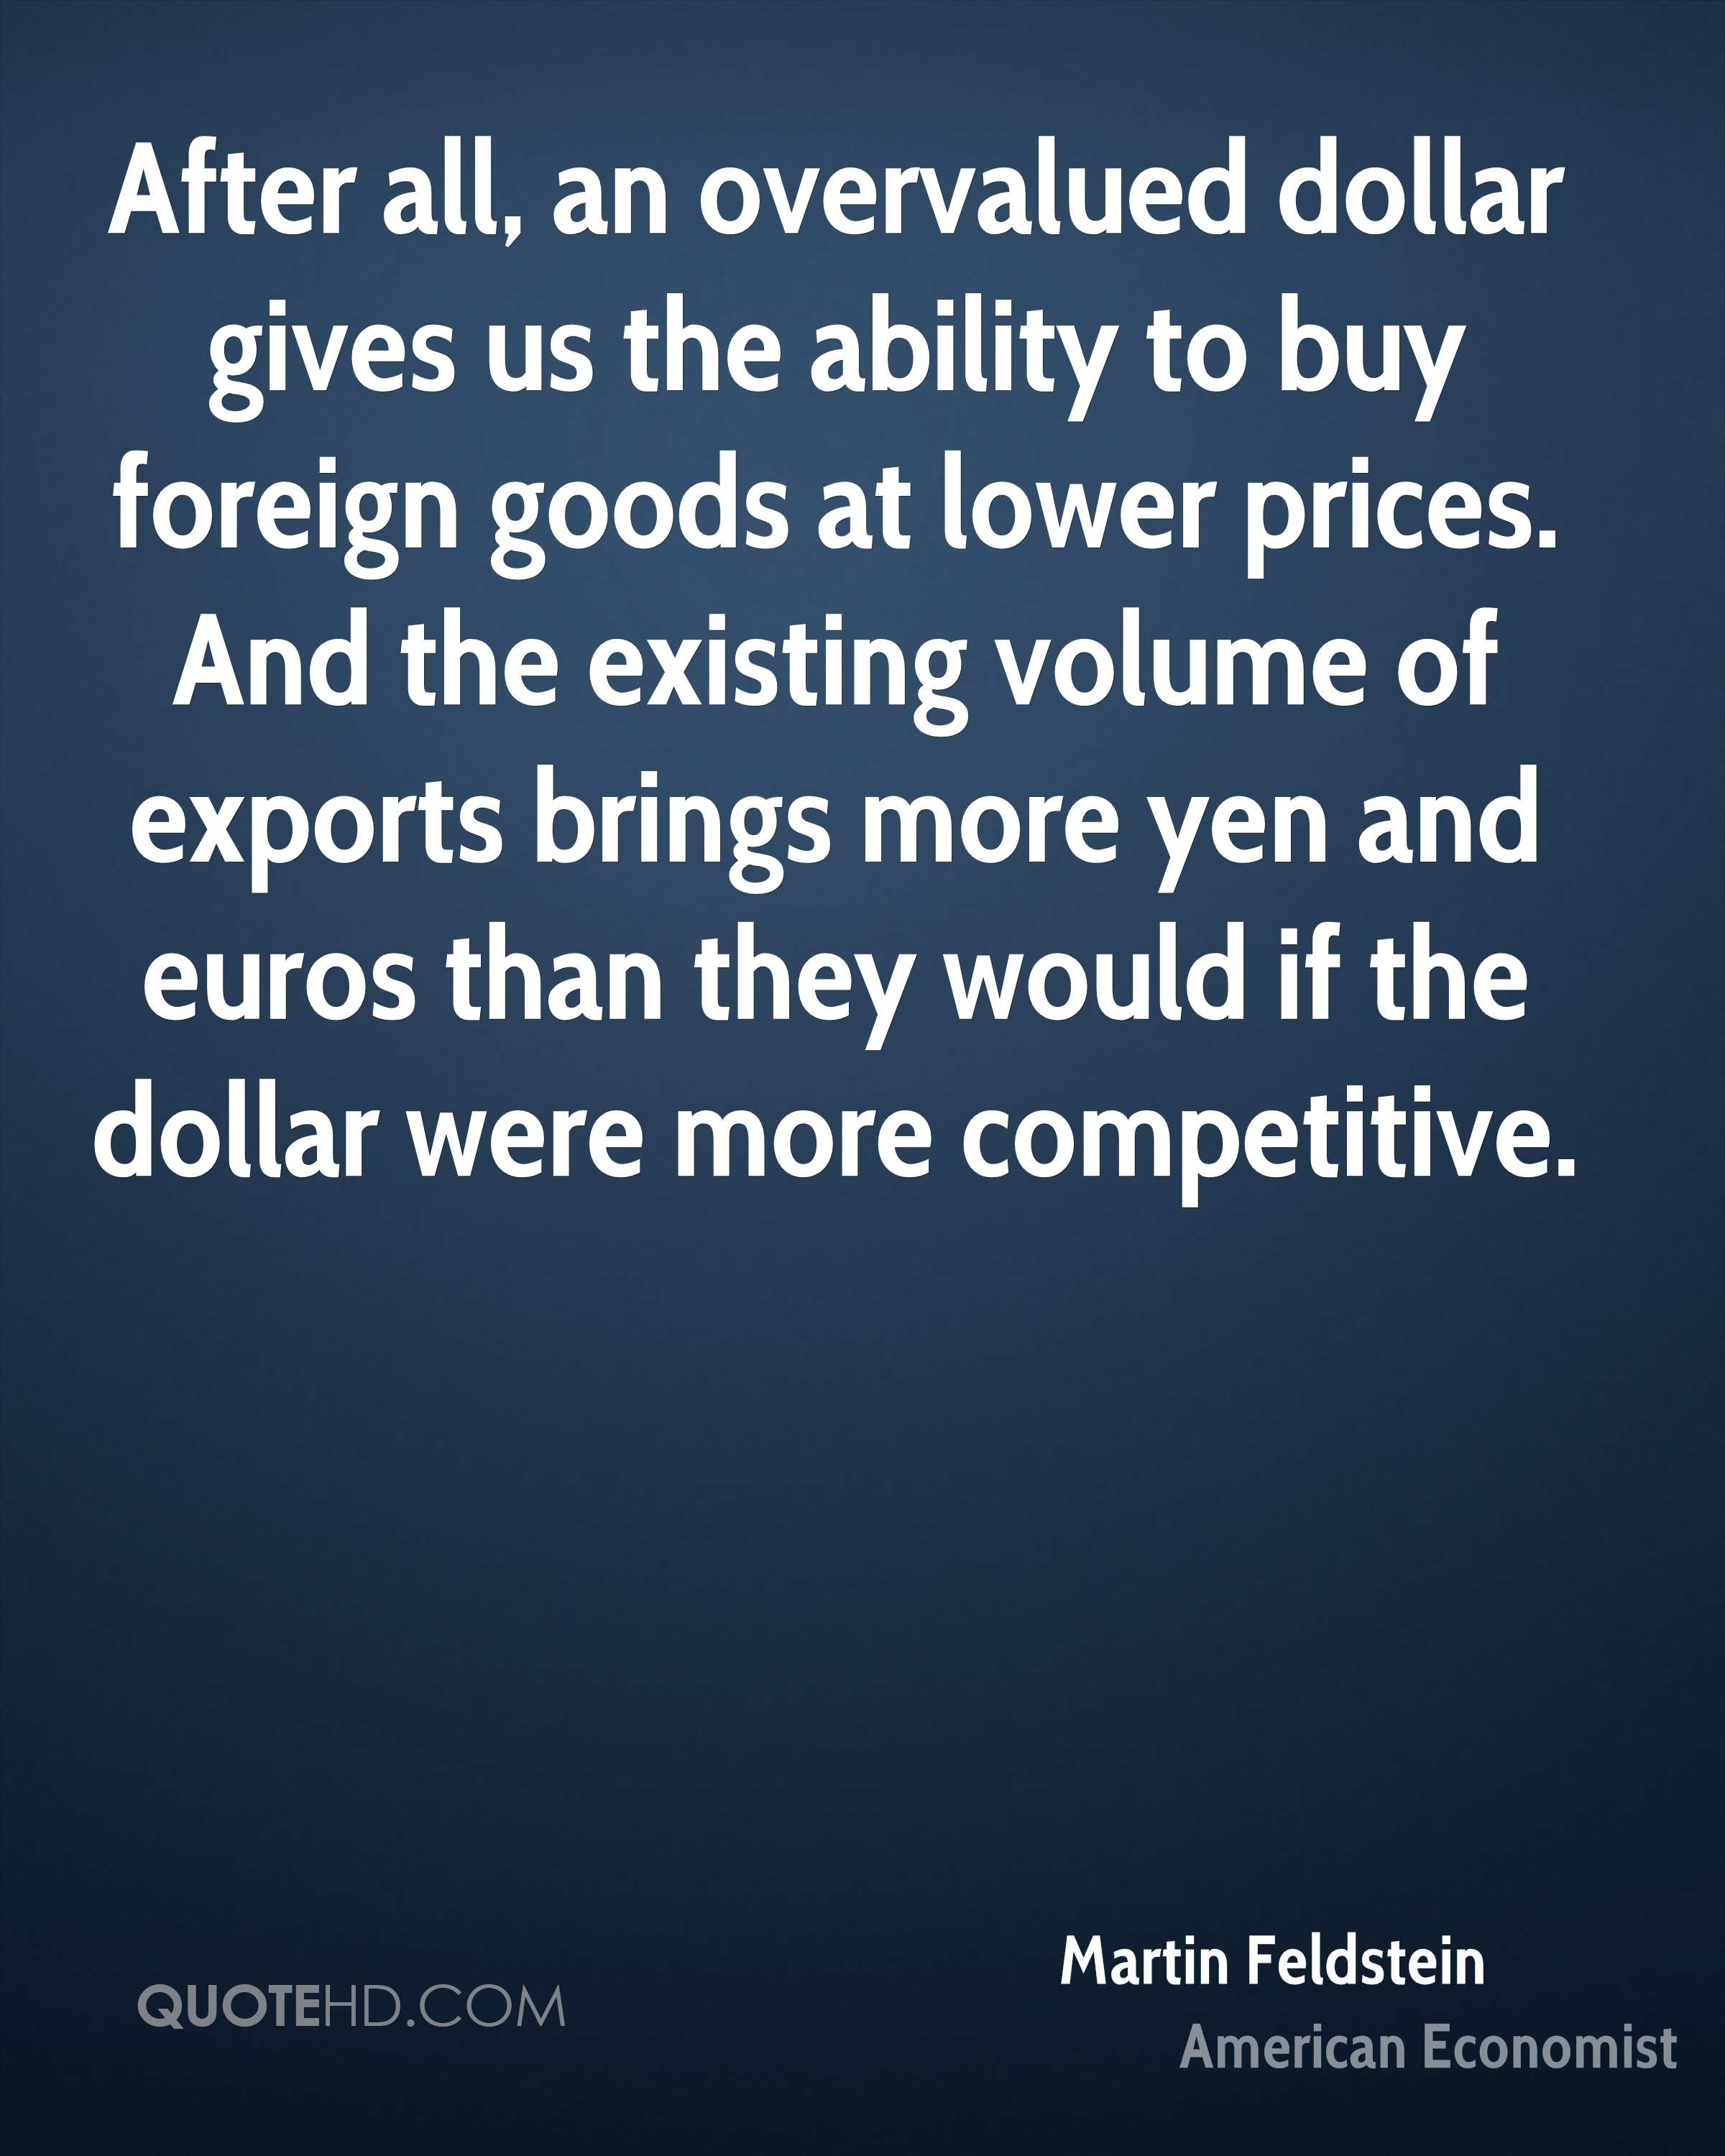 After all, an overvalued dollar gives us the ability to buy foreign goods at lower prices. And the existing volume of exports brings more yen and euros than they would if the dollar were more competitive.